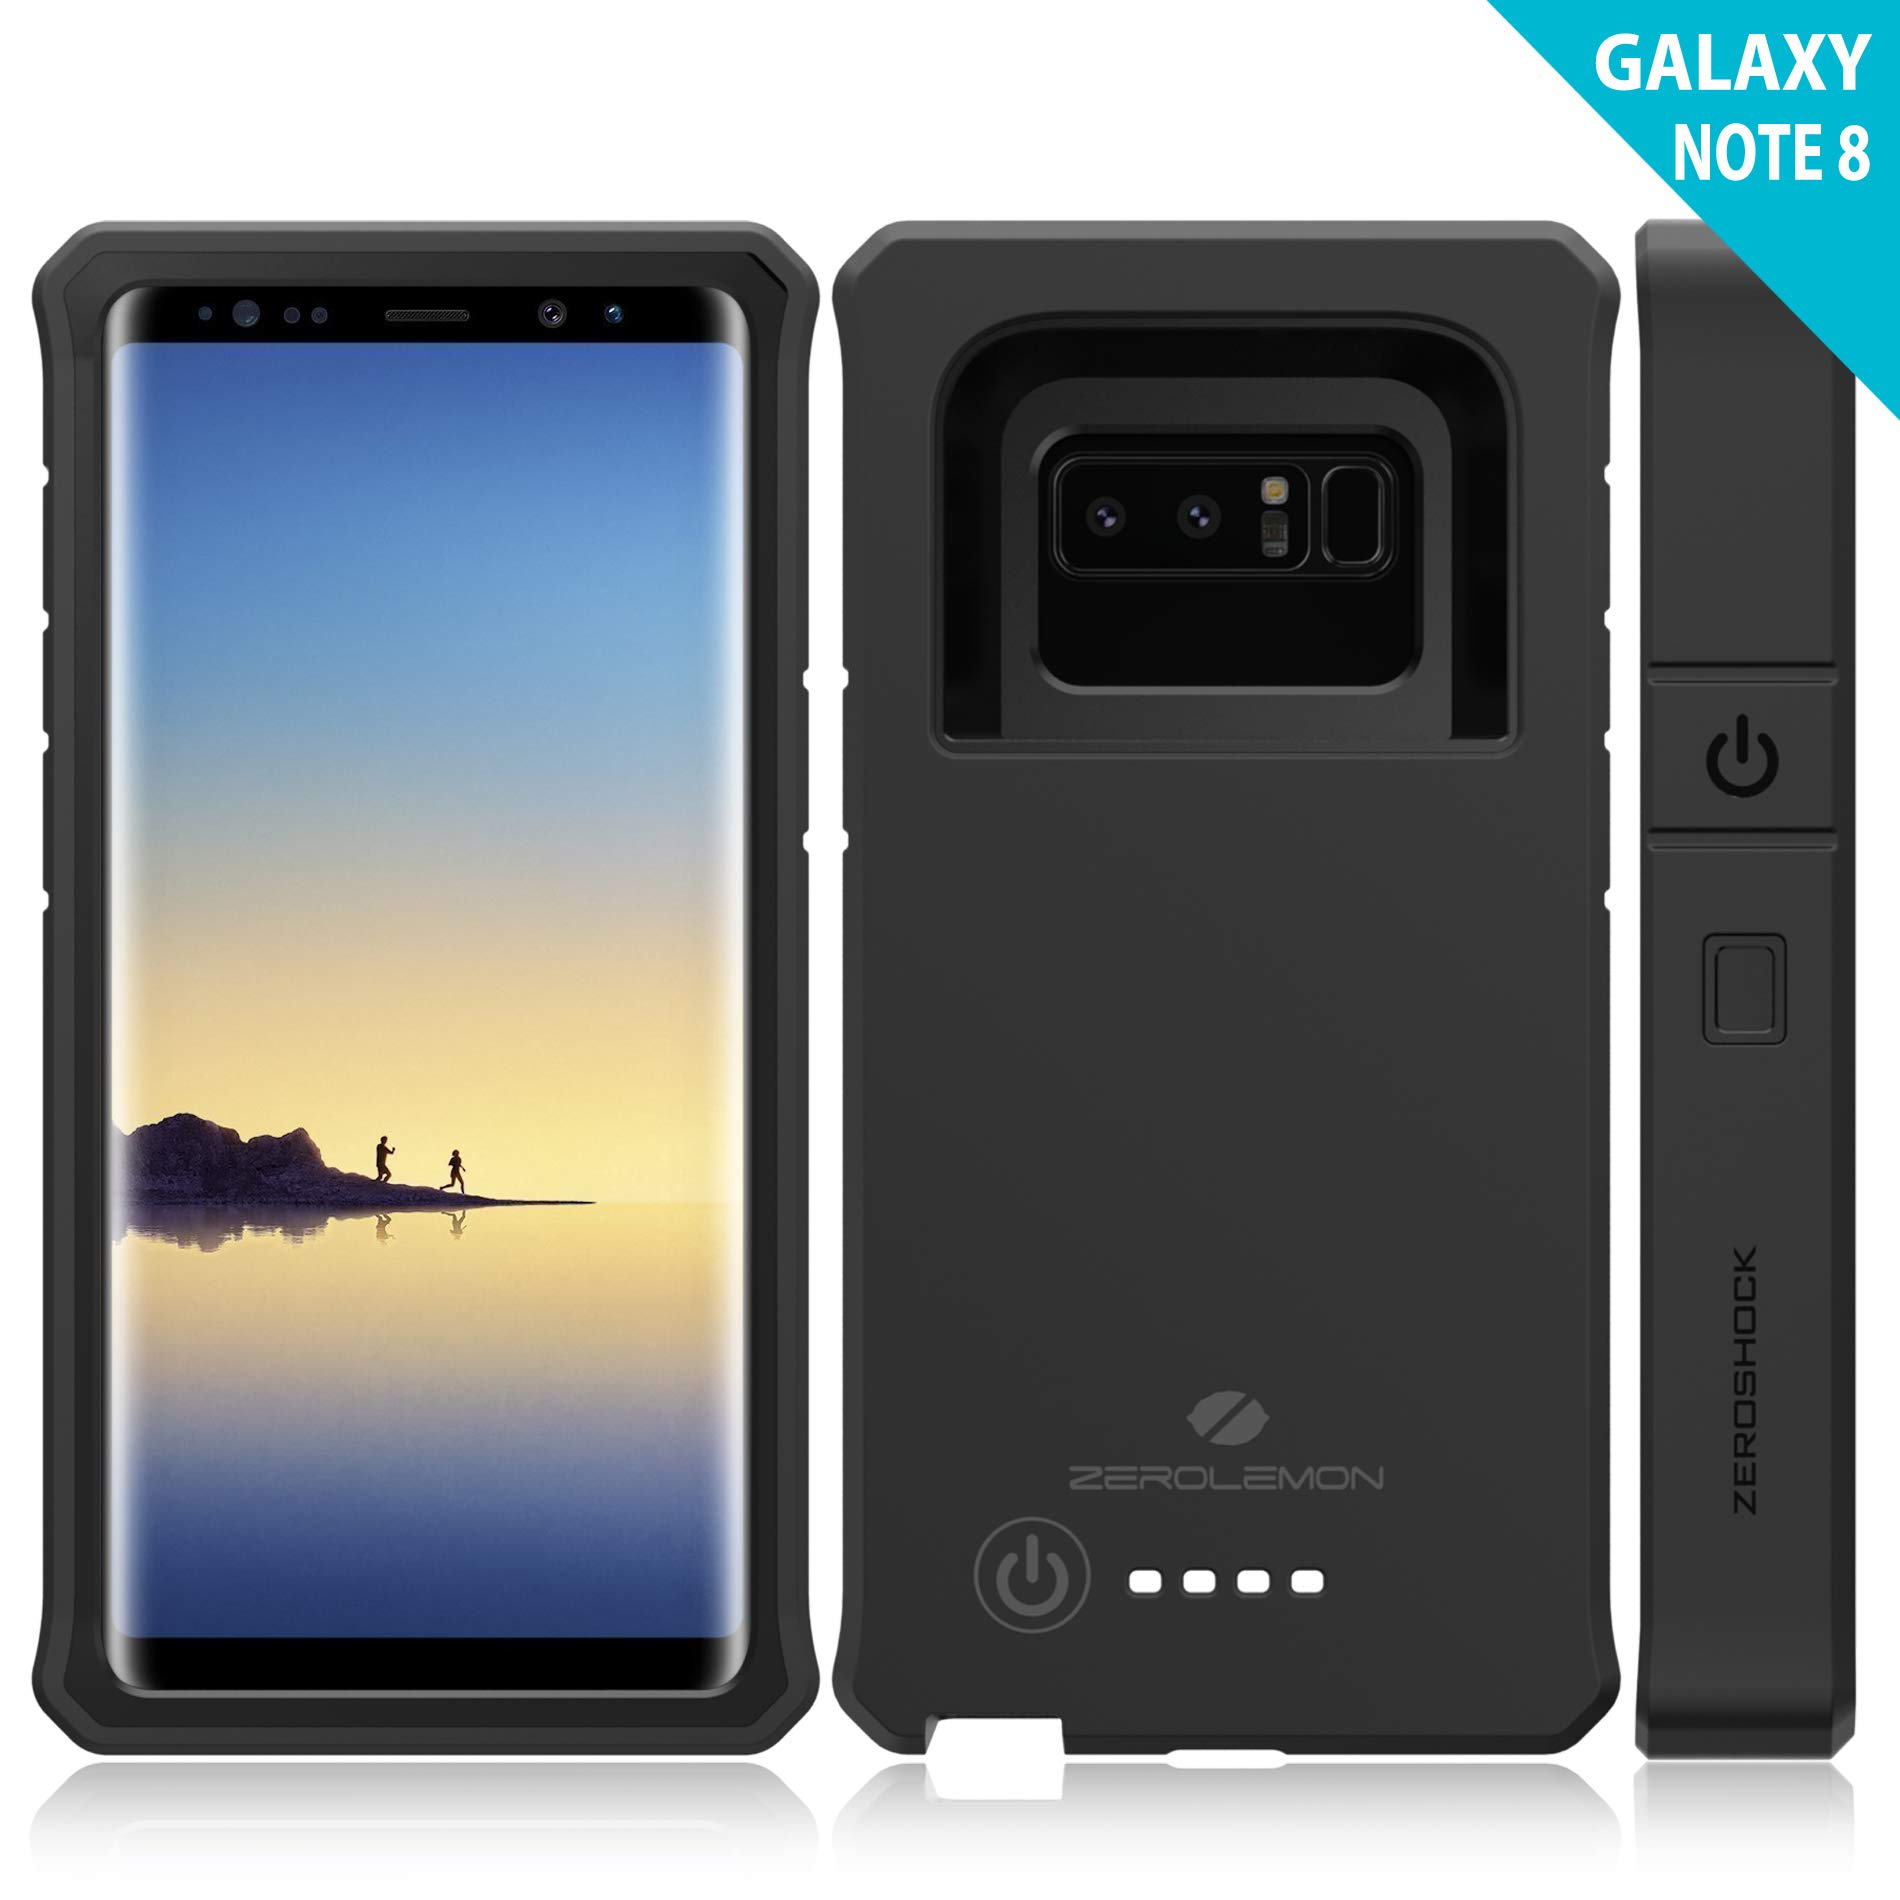 Galaxy Note 8 Battery Charger Case, ZeroLemon ZeroShock 10000mAh Extended Rugged Charging Case Portable Battery Case for Samsung Galaxy Note 8 - Black